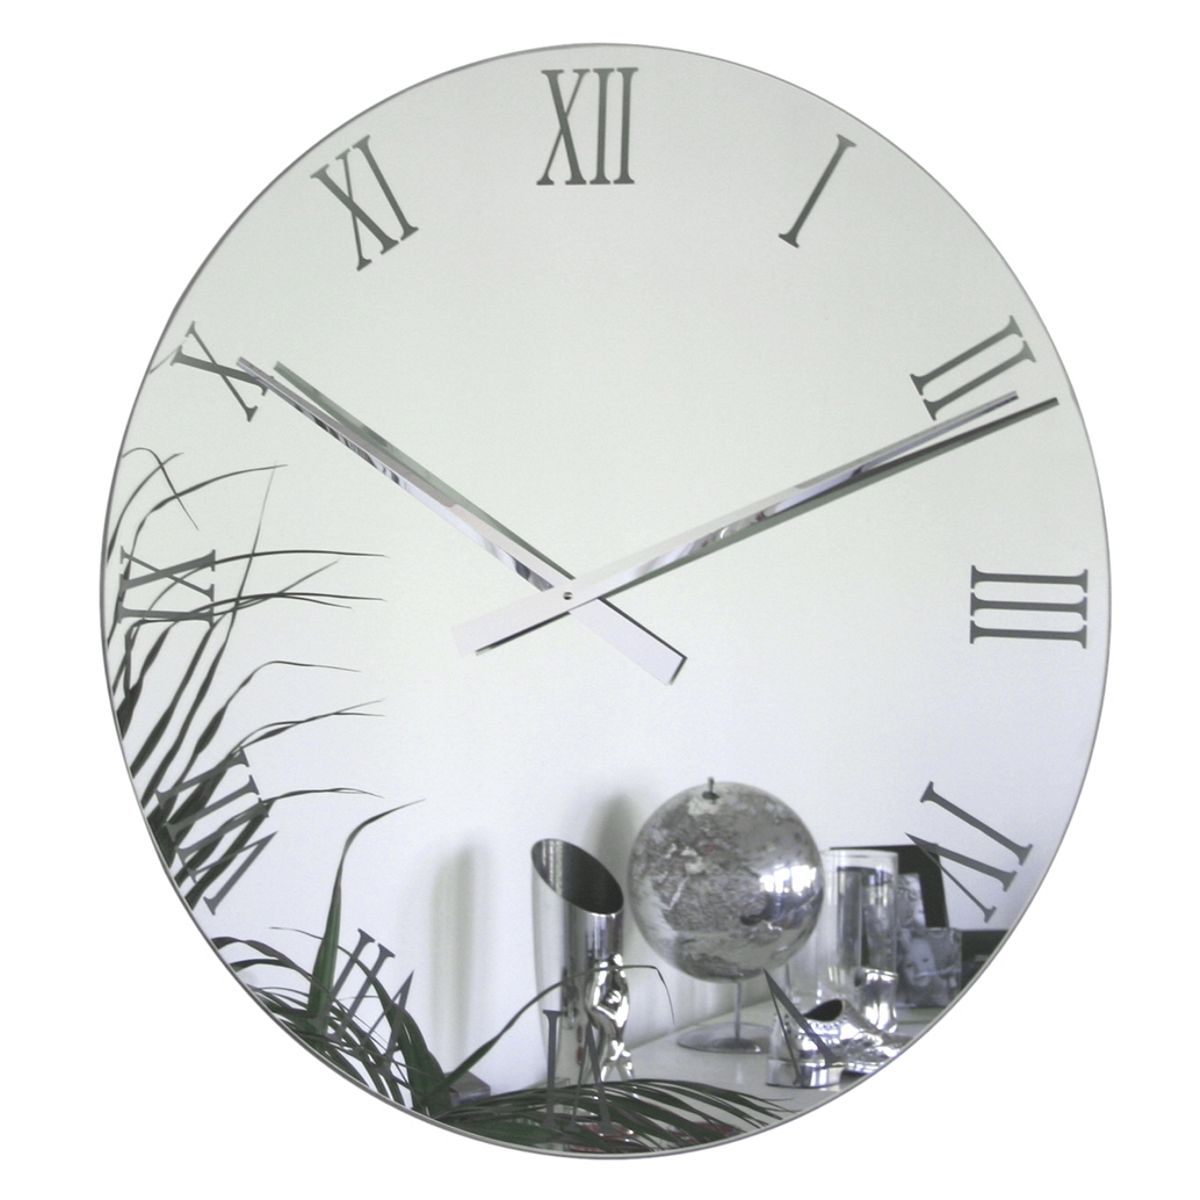 56cm Diameter Rocco Verre Mirror Wall Clock Mirror Wall